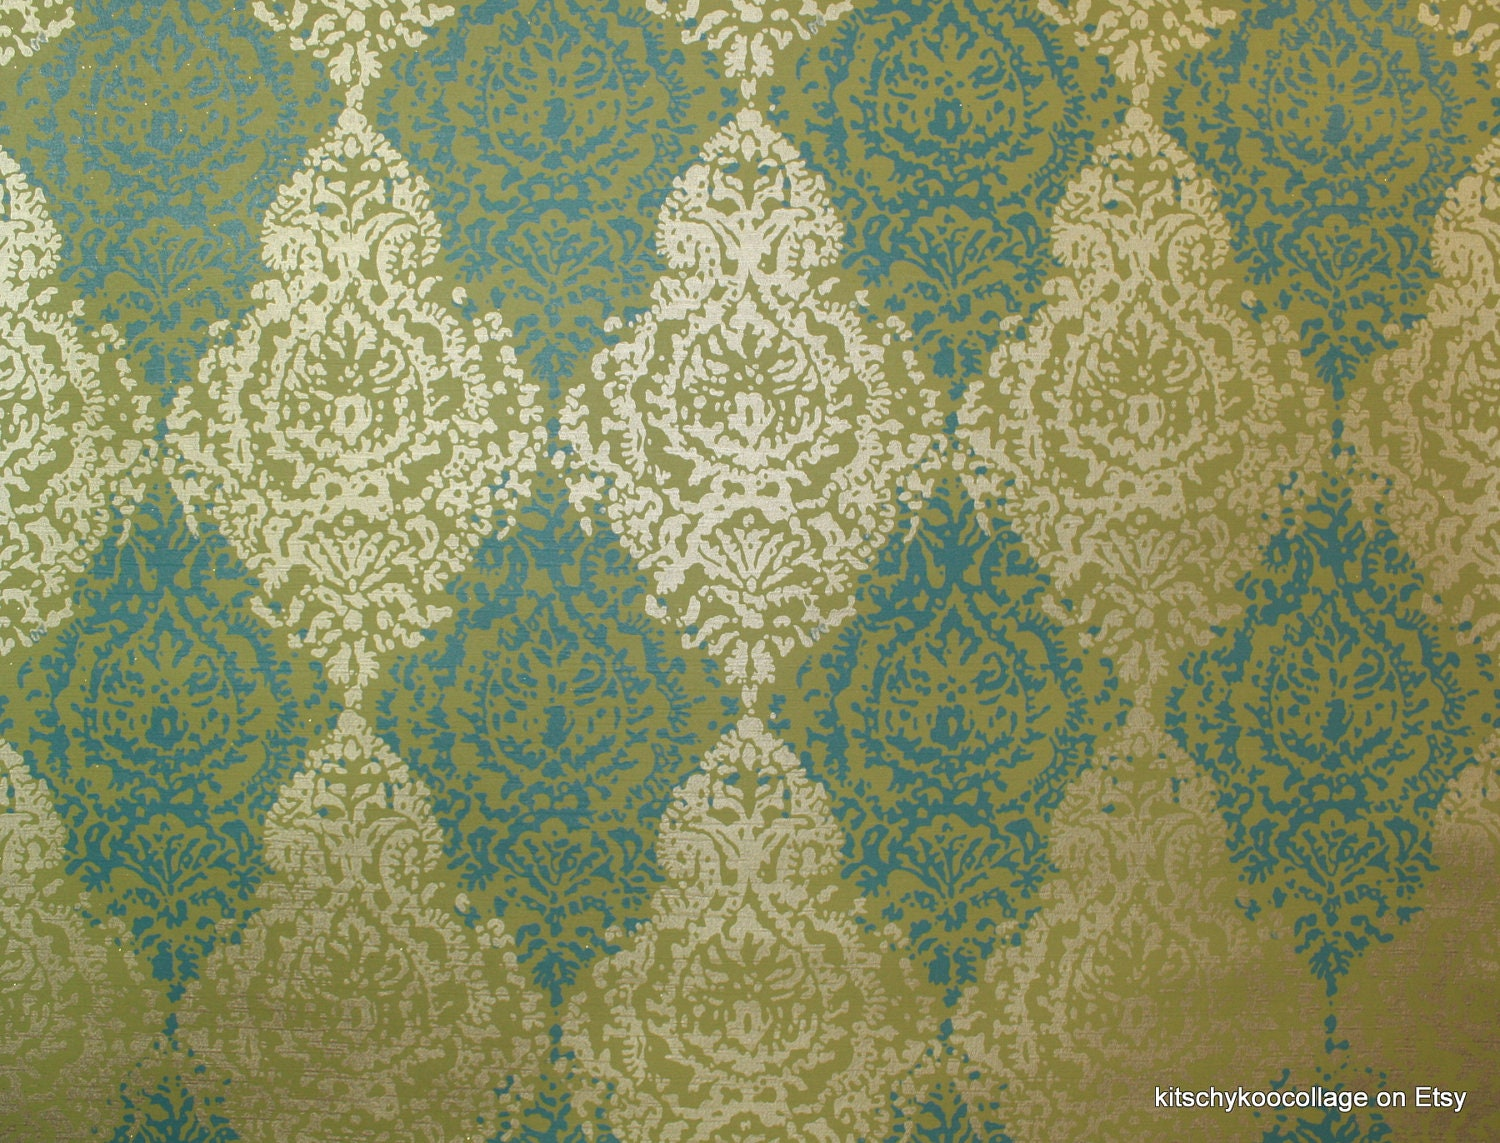 1970s vintage wallpaper retro - photo #17